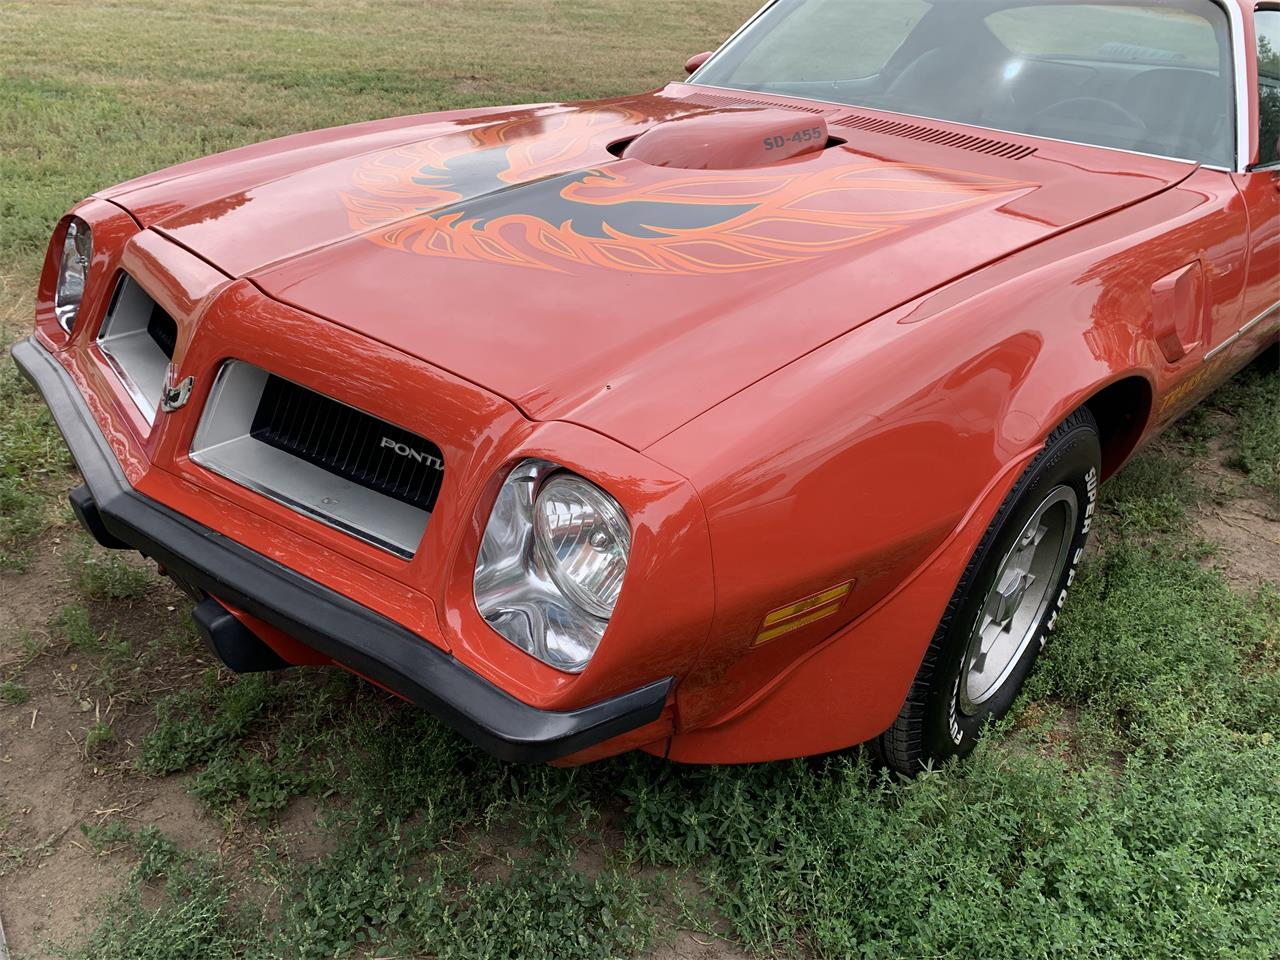 Large Picture of 1974 Firebird Trans Am located in Colorado - $18,000.00 Offered by a Private Seller - QS0Q